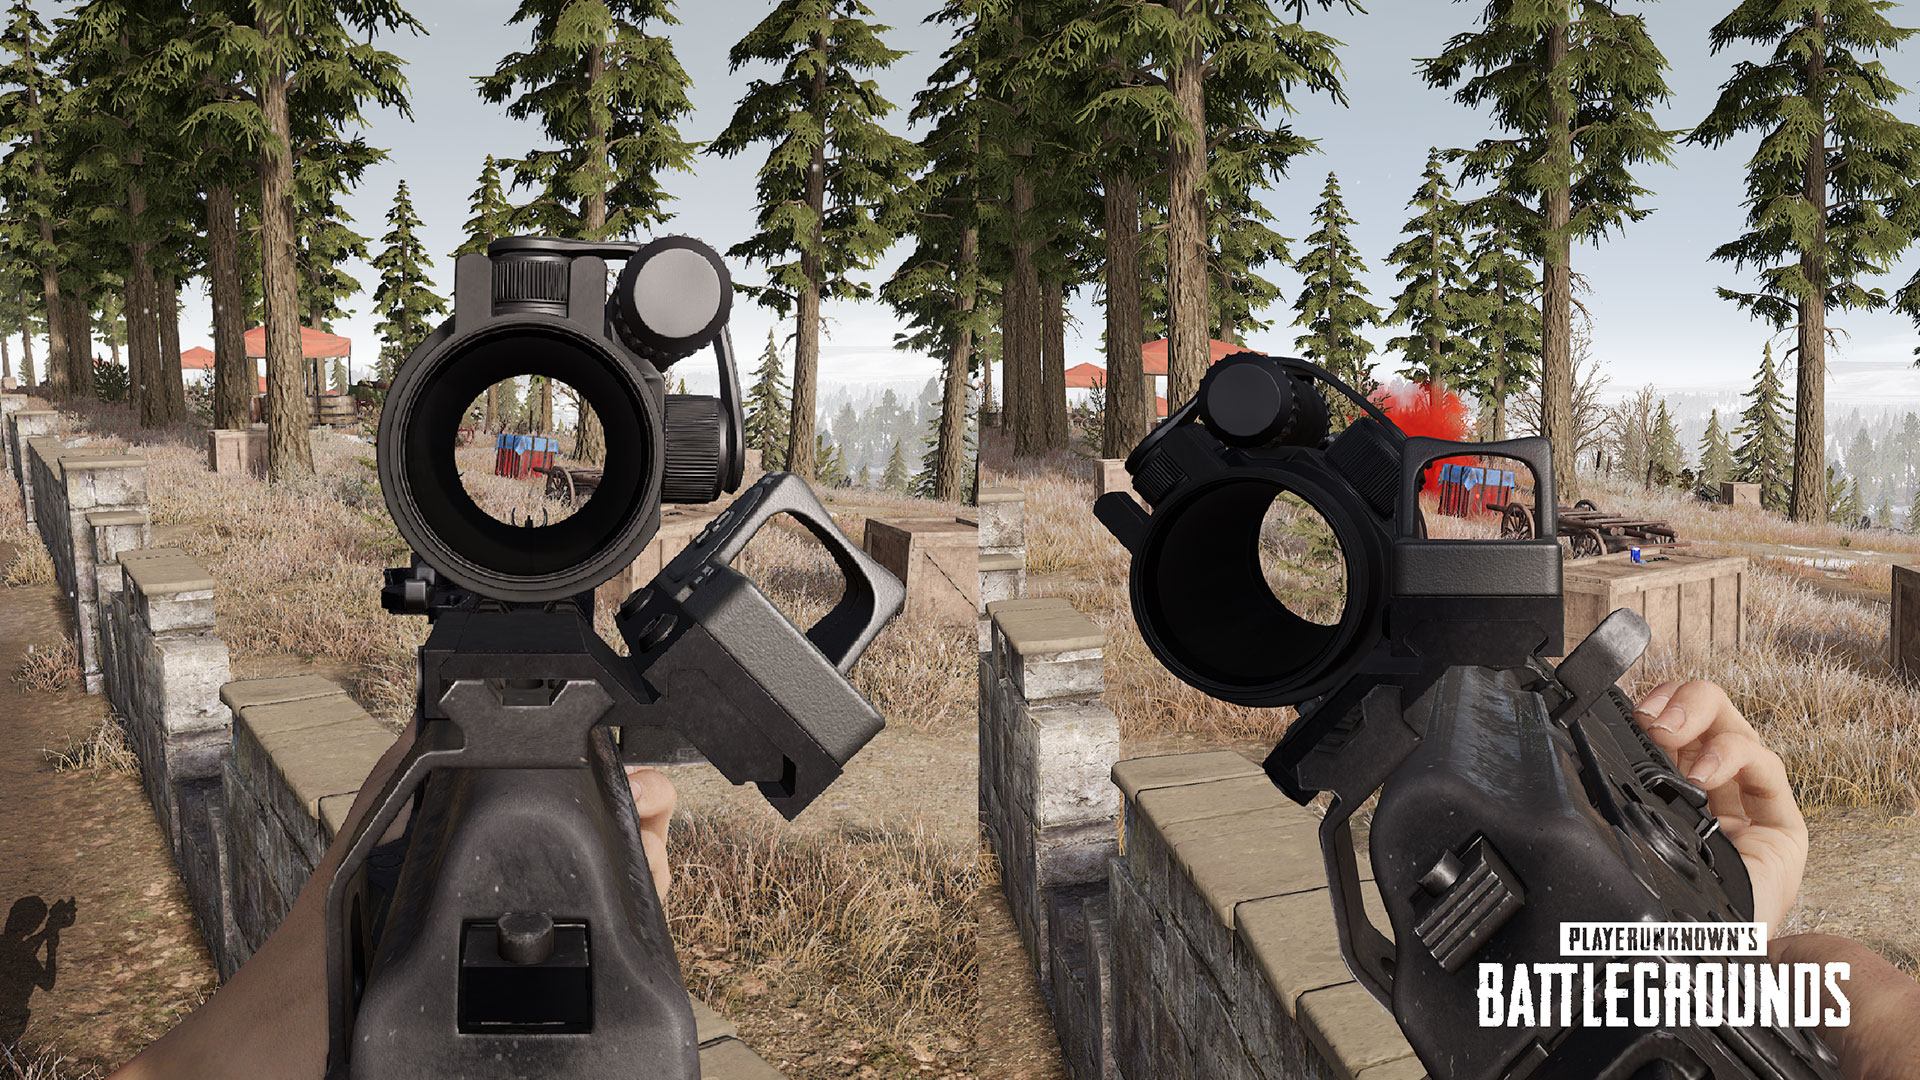 PUBG PC Update 25 Live On Test Server Adds New Weapon